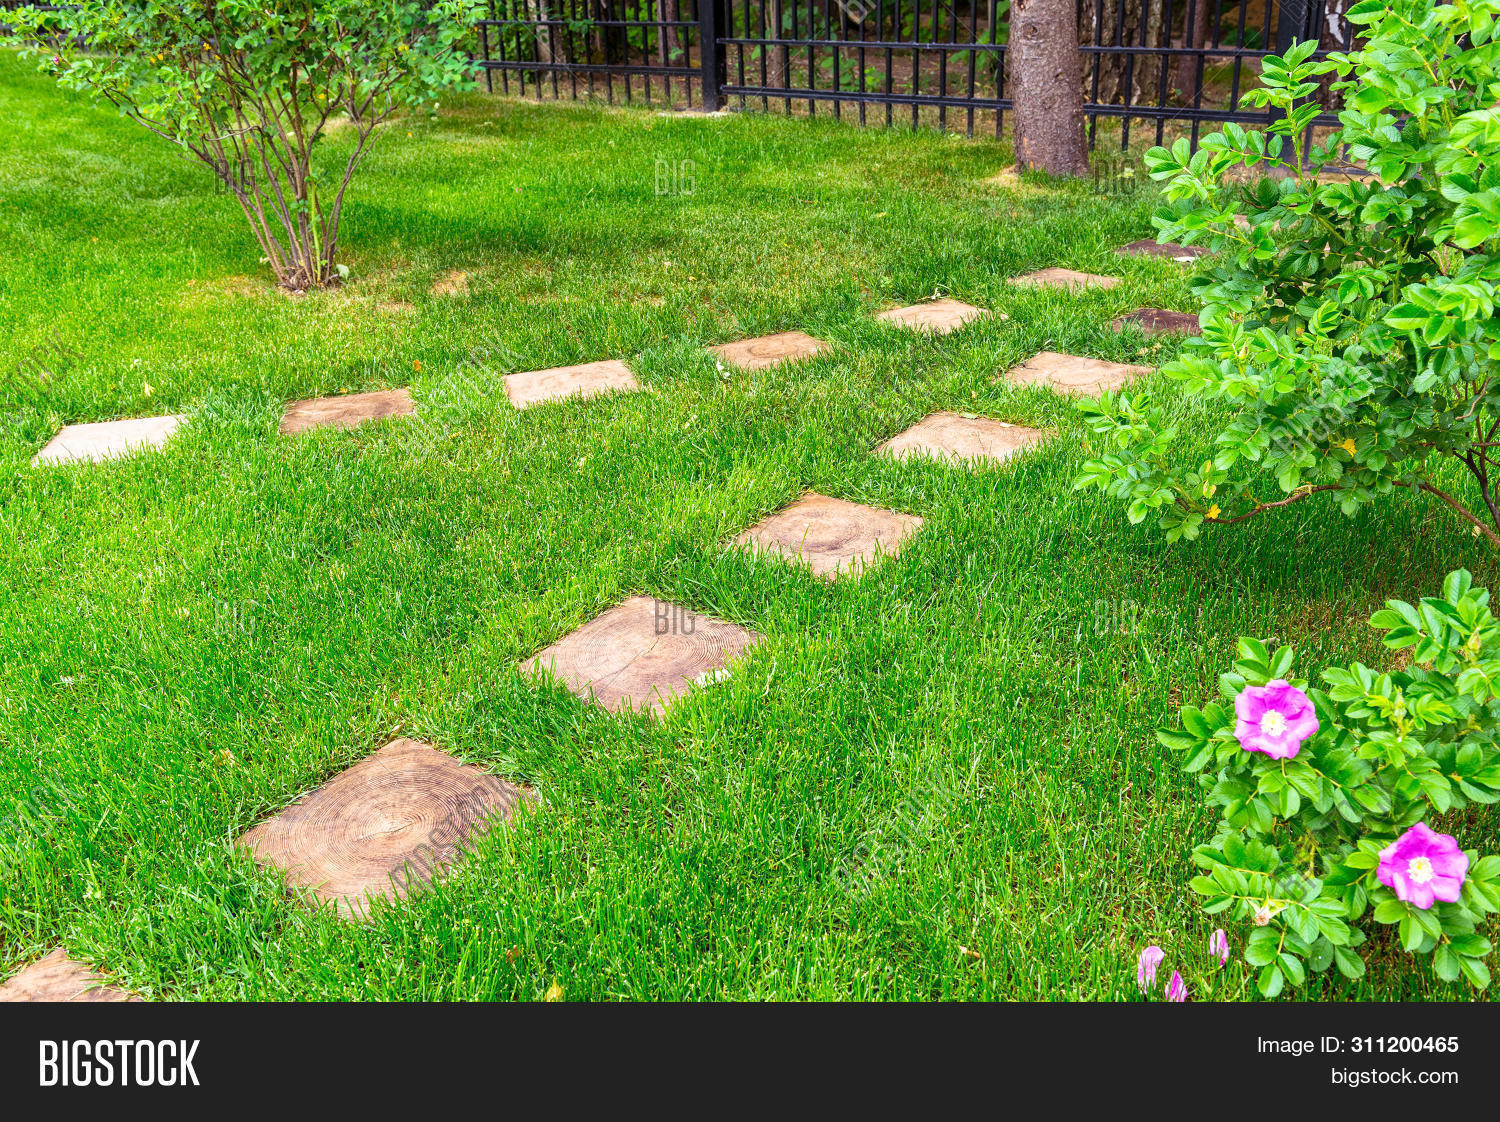 Landscaping Home Image Photo Free Trial Bigstock